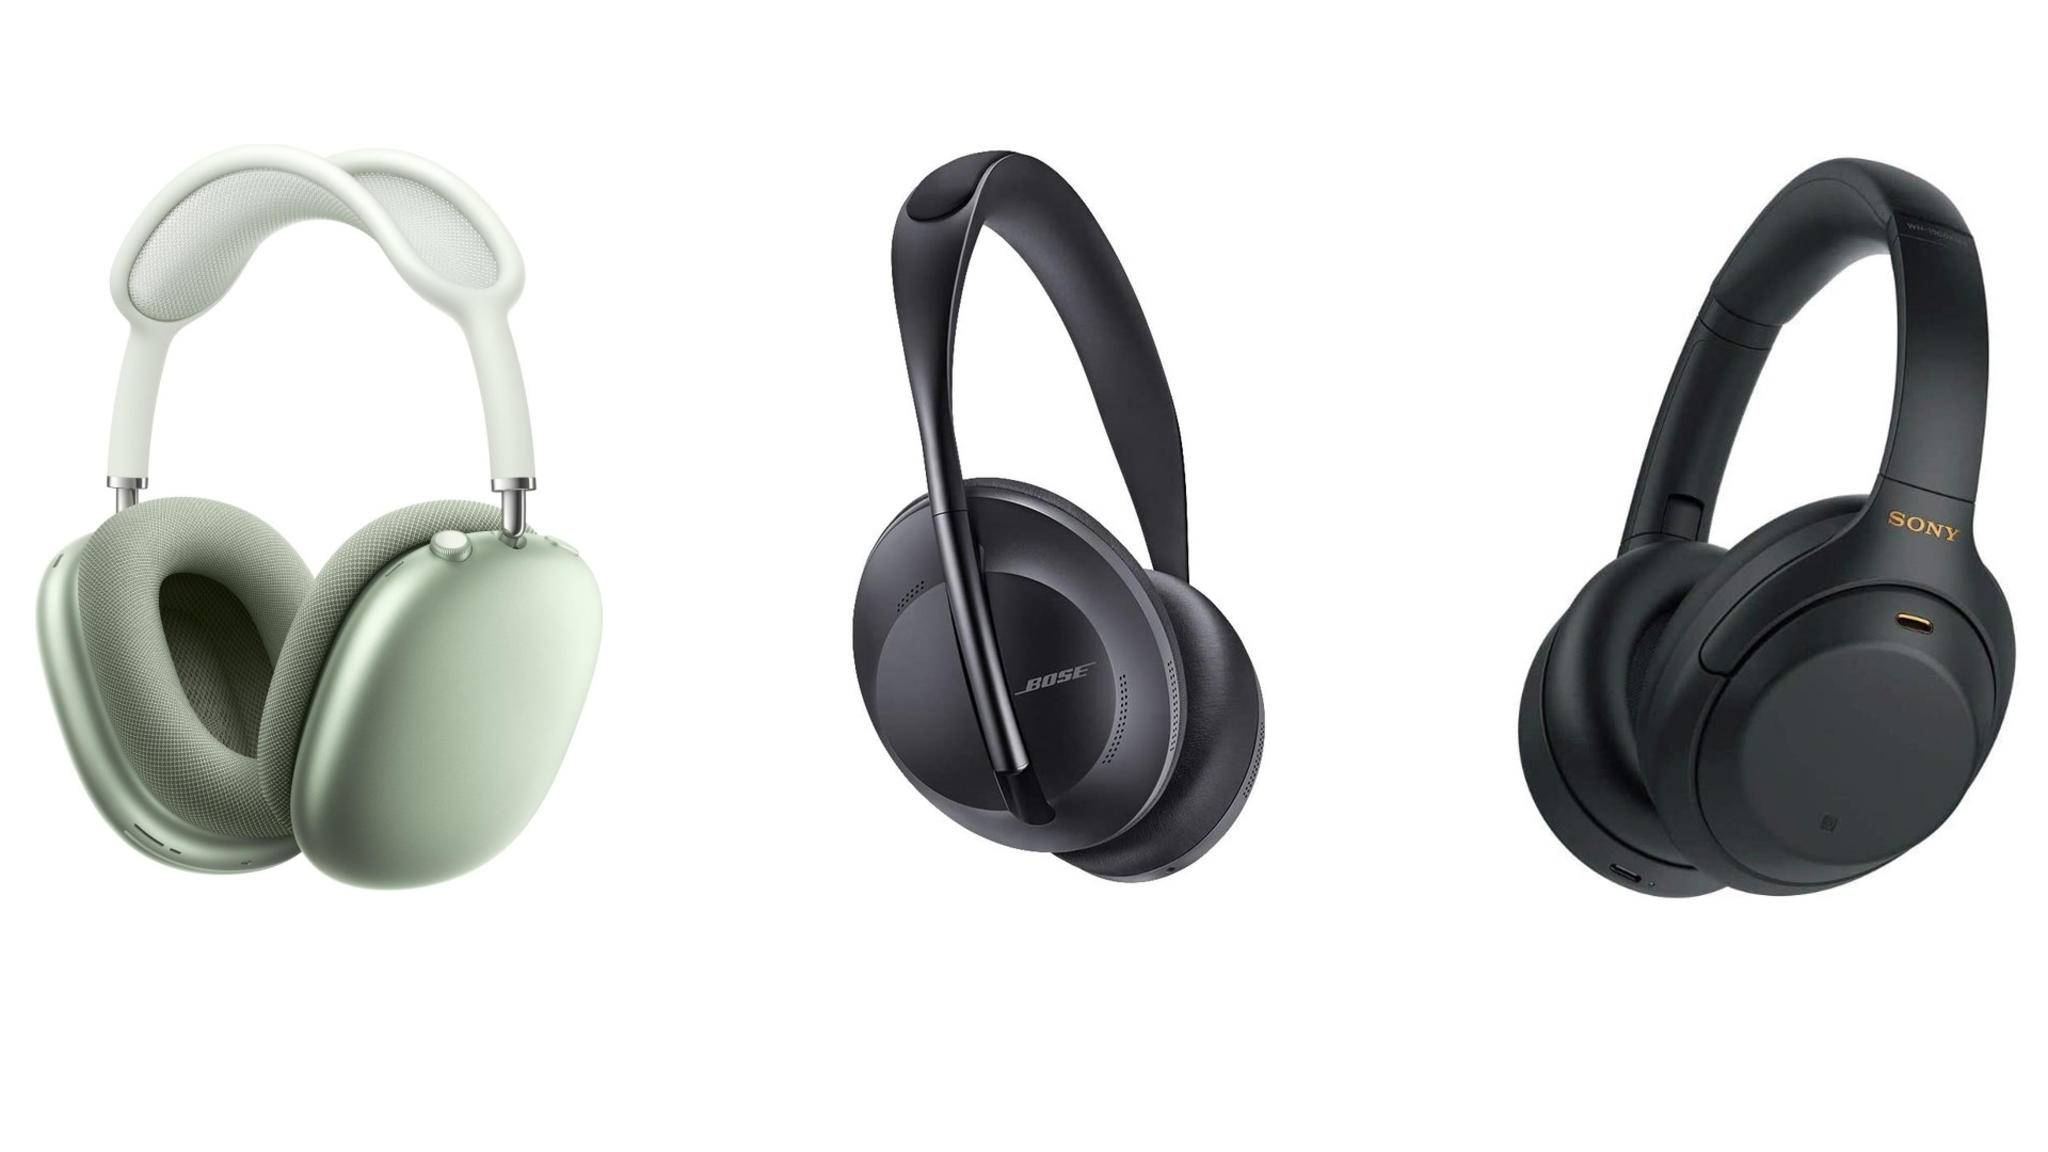 apple-airpods-max-bose-headphones-700-sony-wh-1000xm4